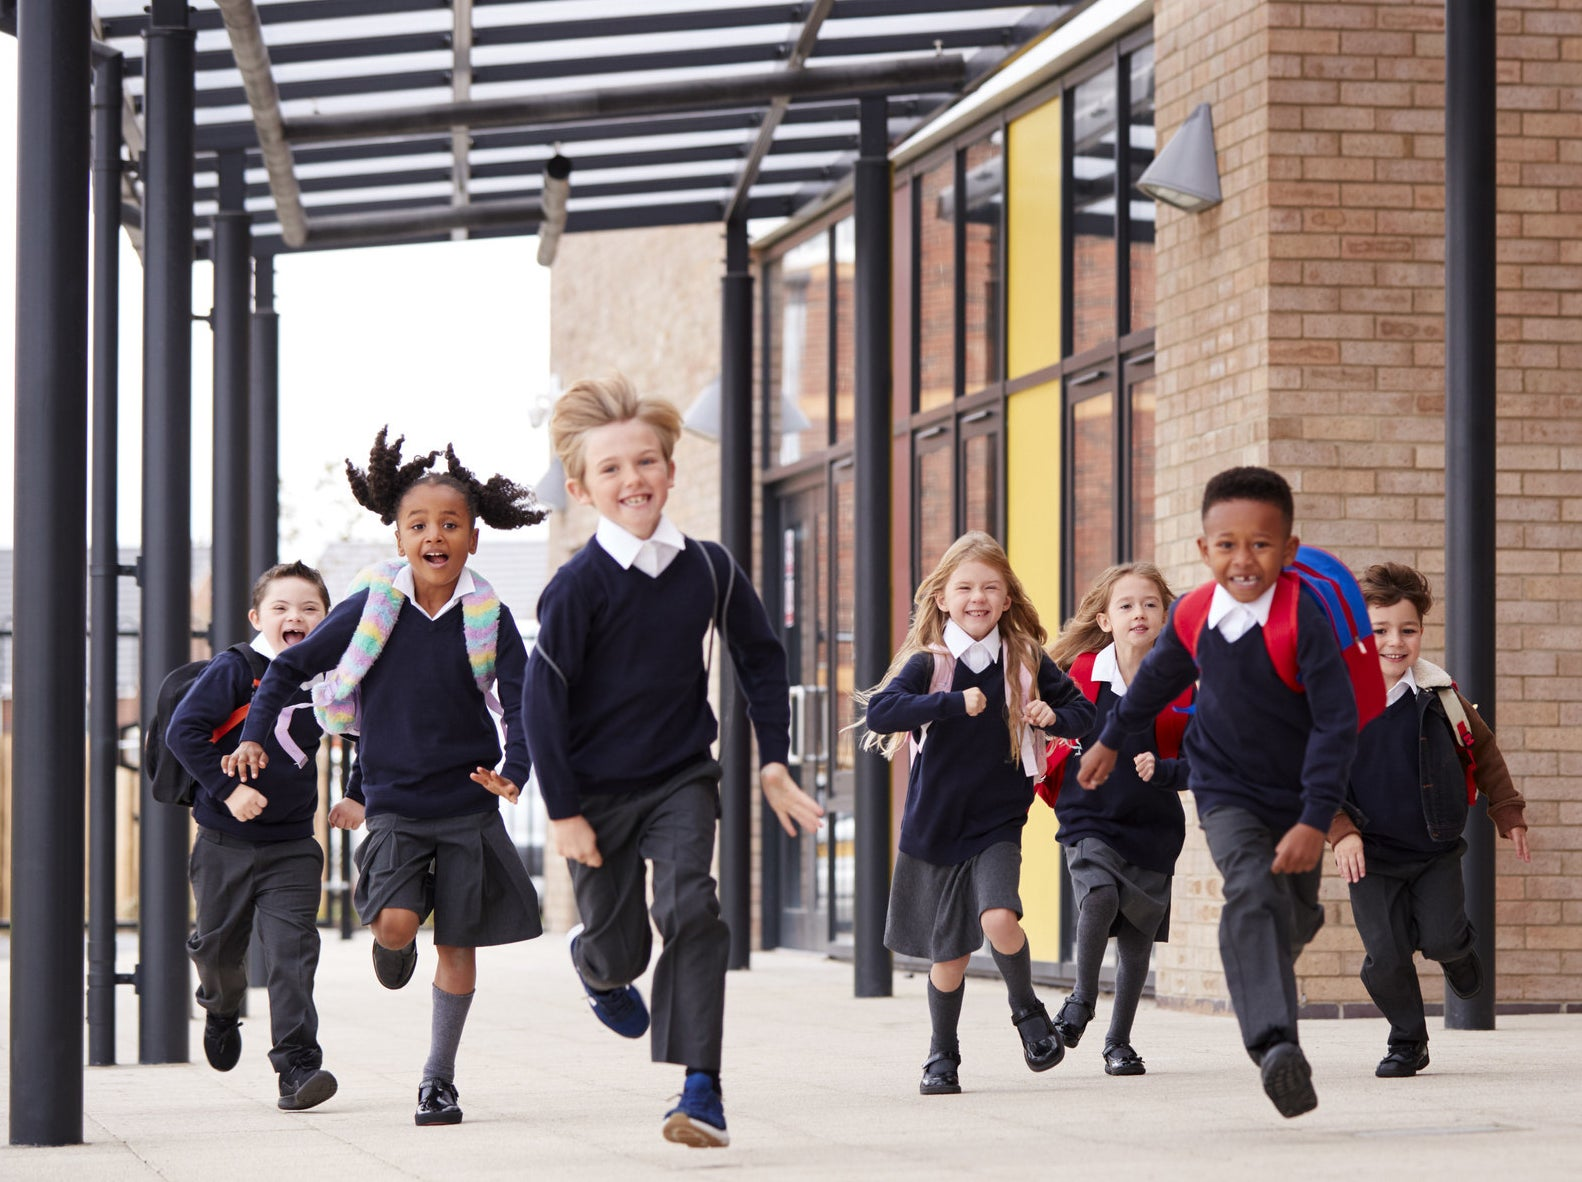 Schoolkids run out of the school after the final bell rang